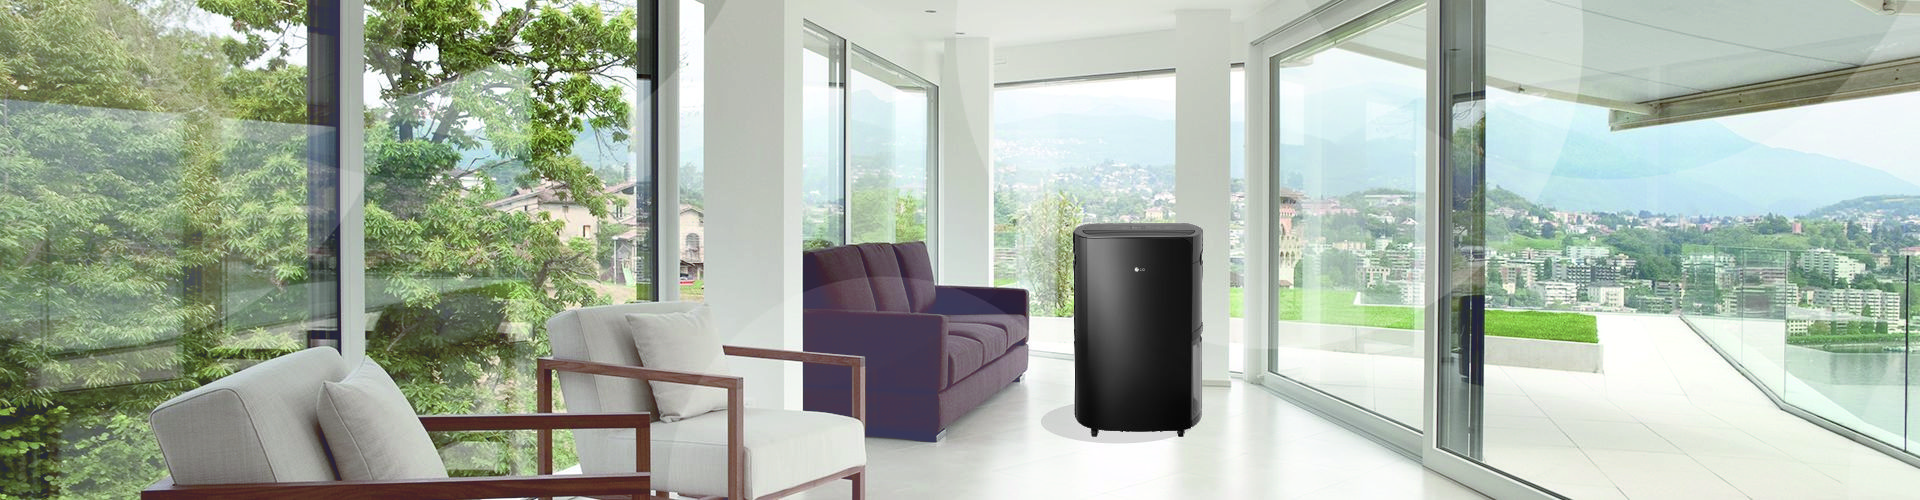 Best Energy-Efficient Dehumidifiers